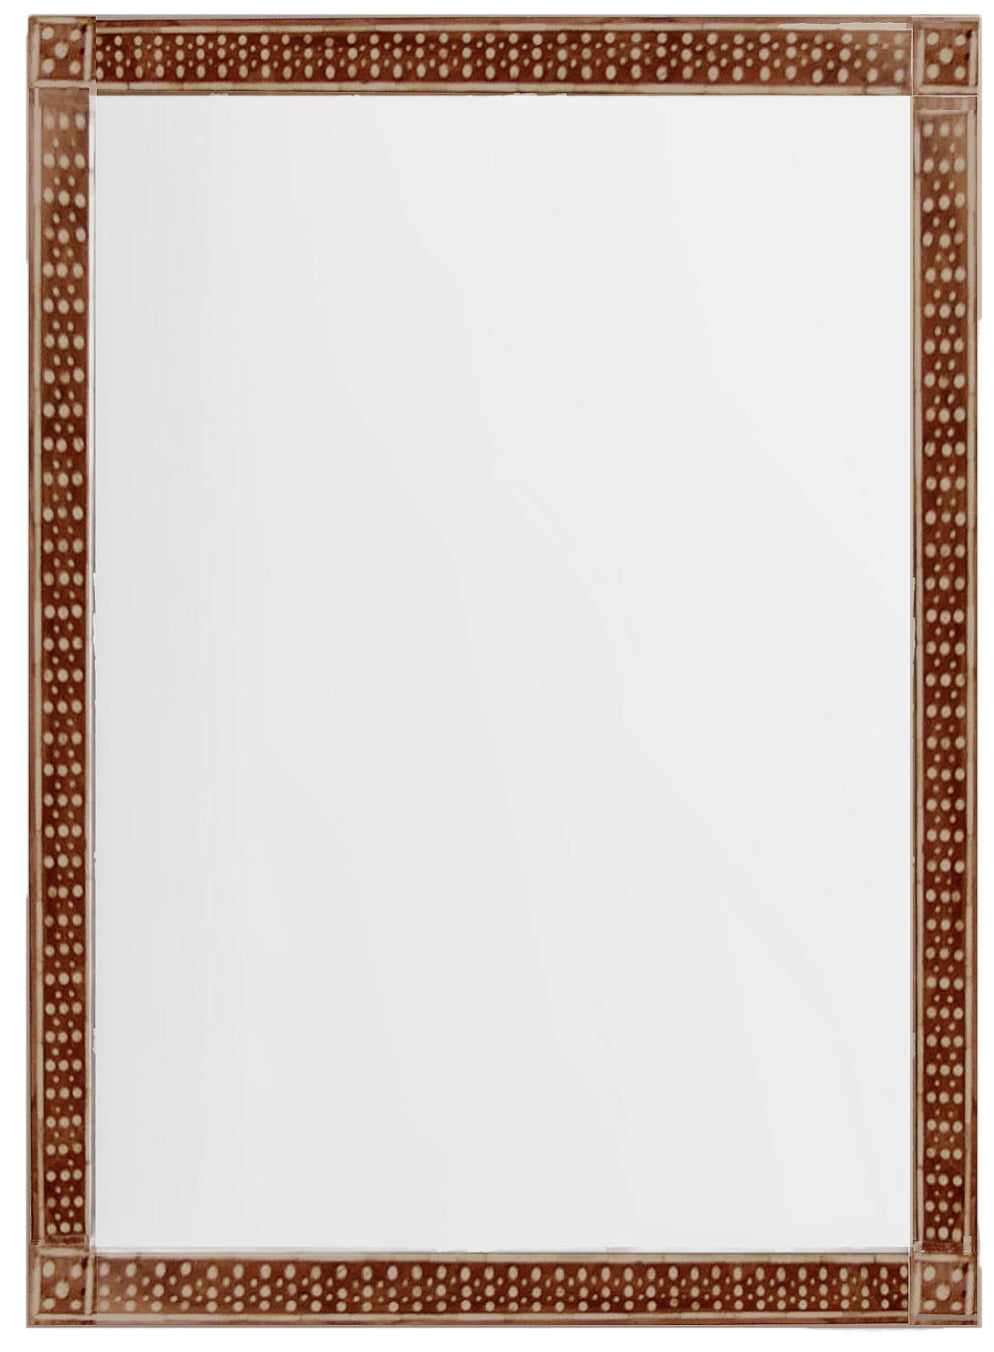 Bone Dotted Mirror - Amy Berry Home